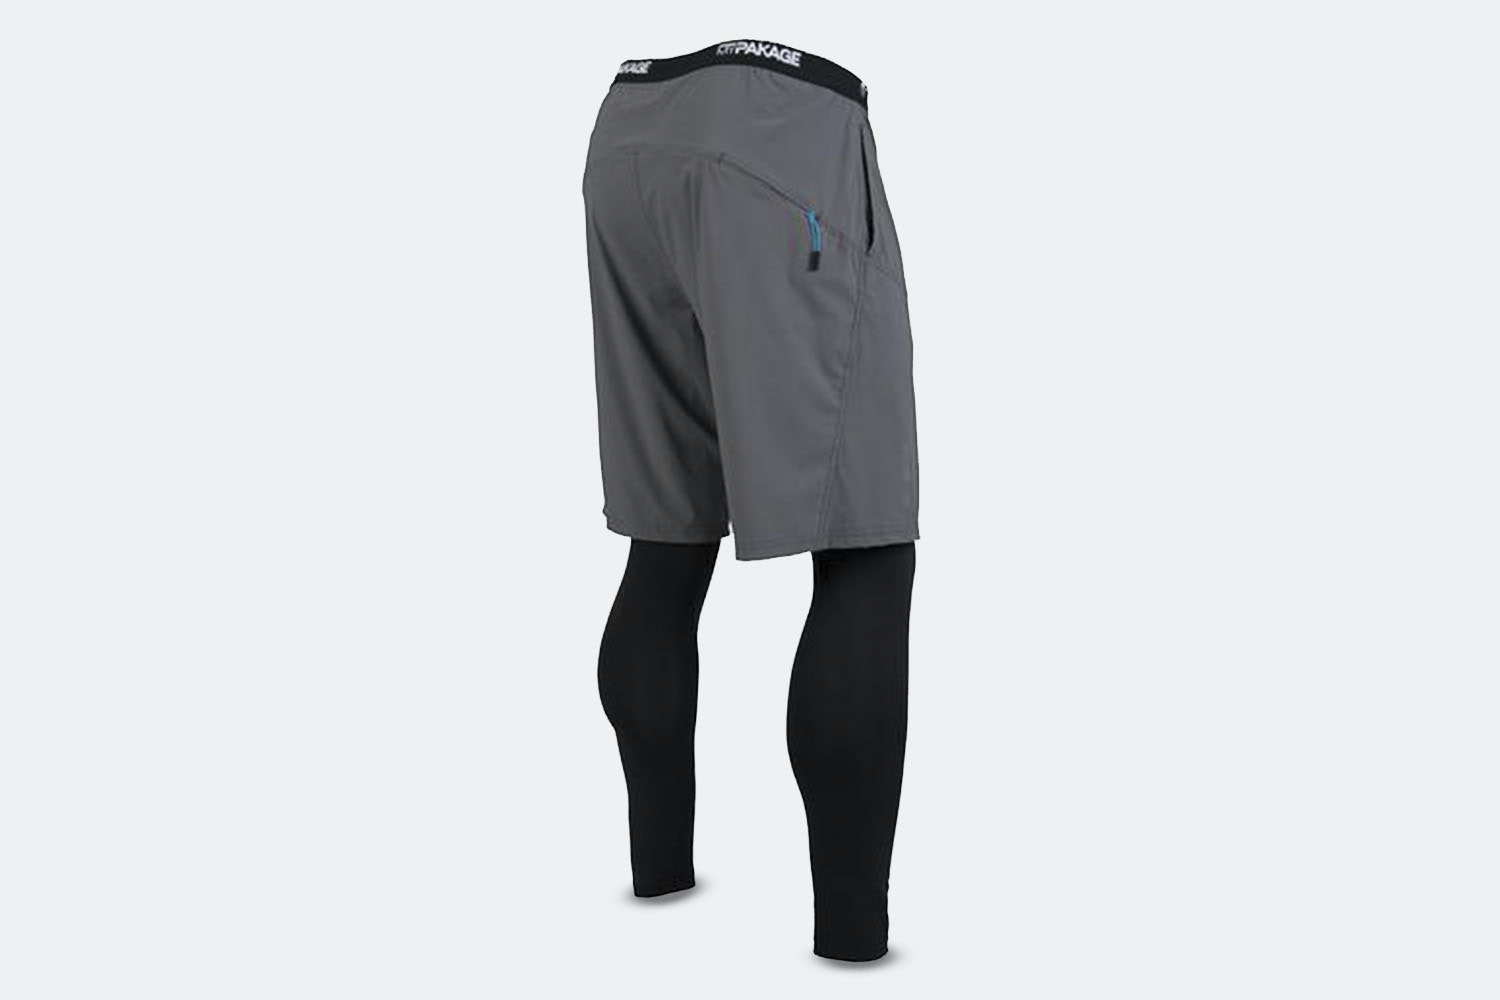 MyPakage Pro Series 2-in-1 Shorts